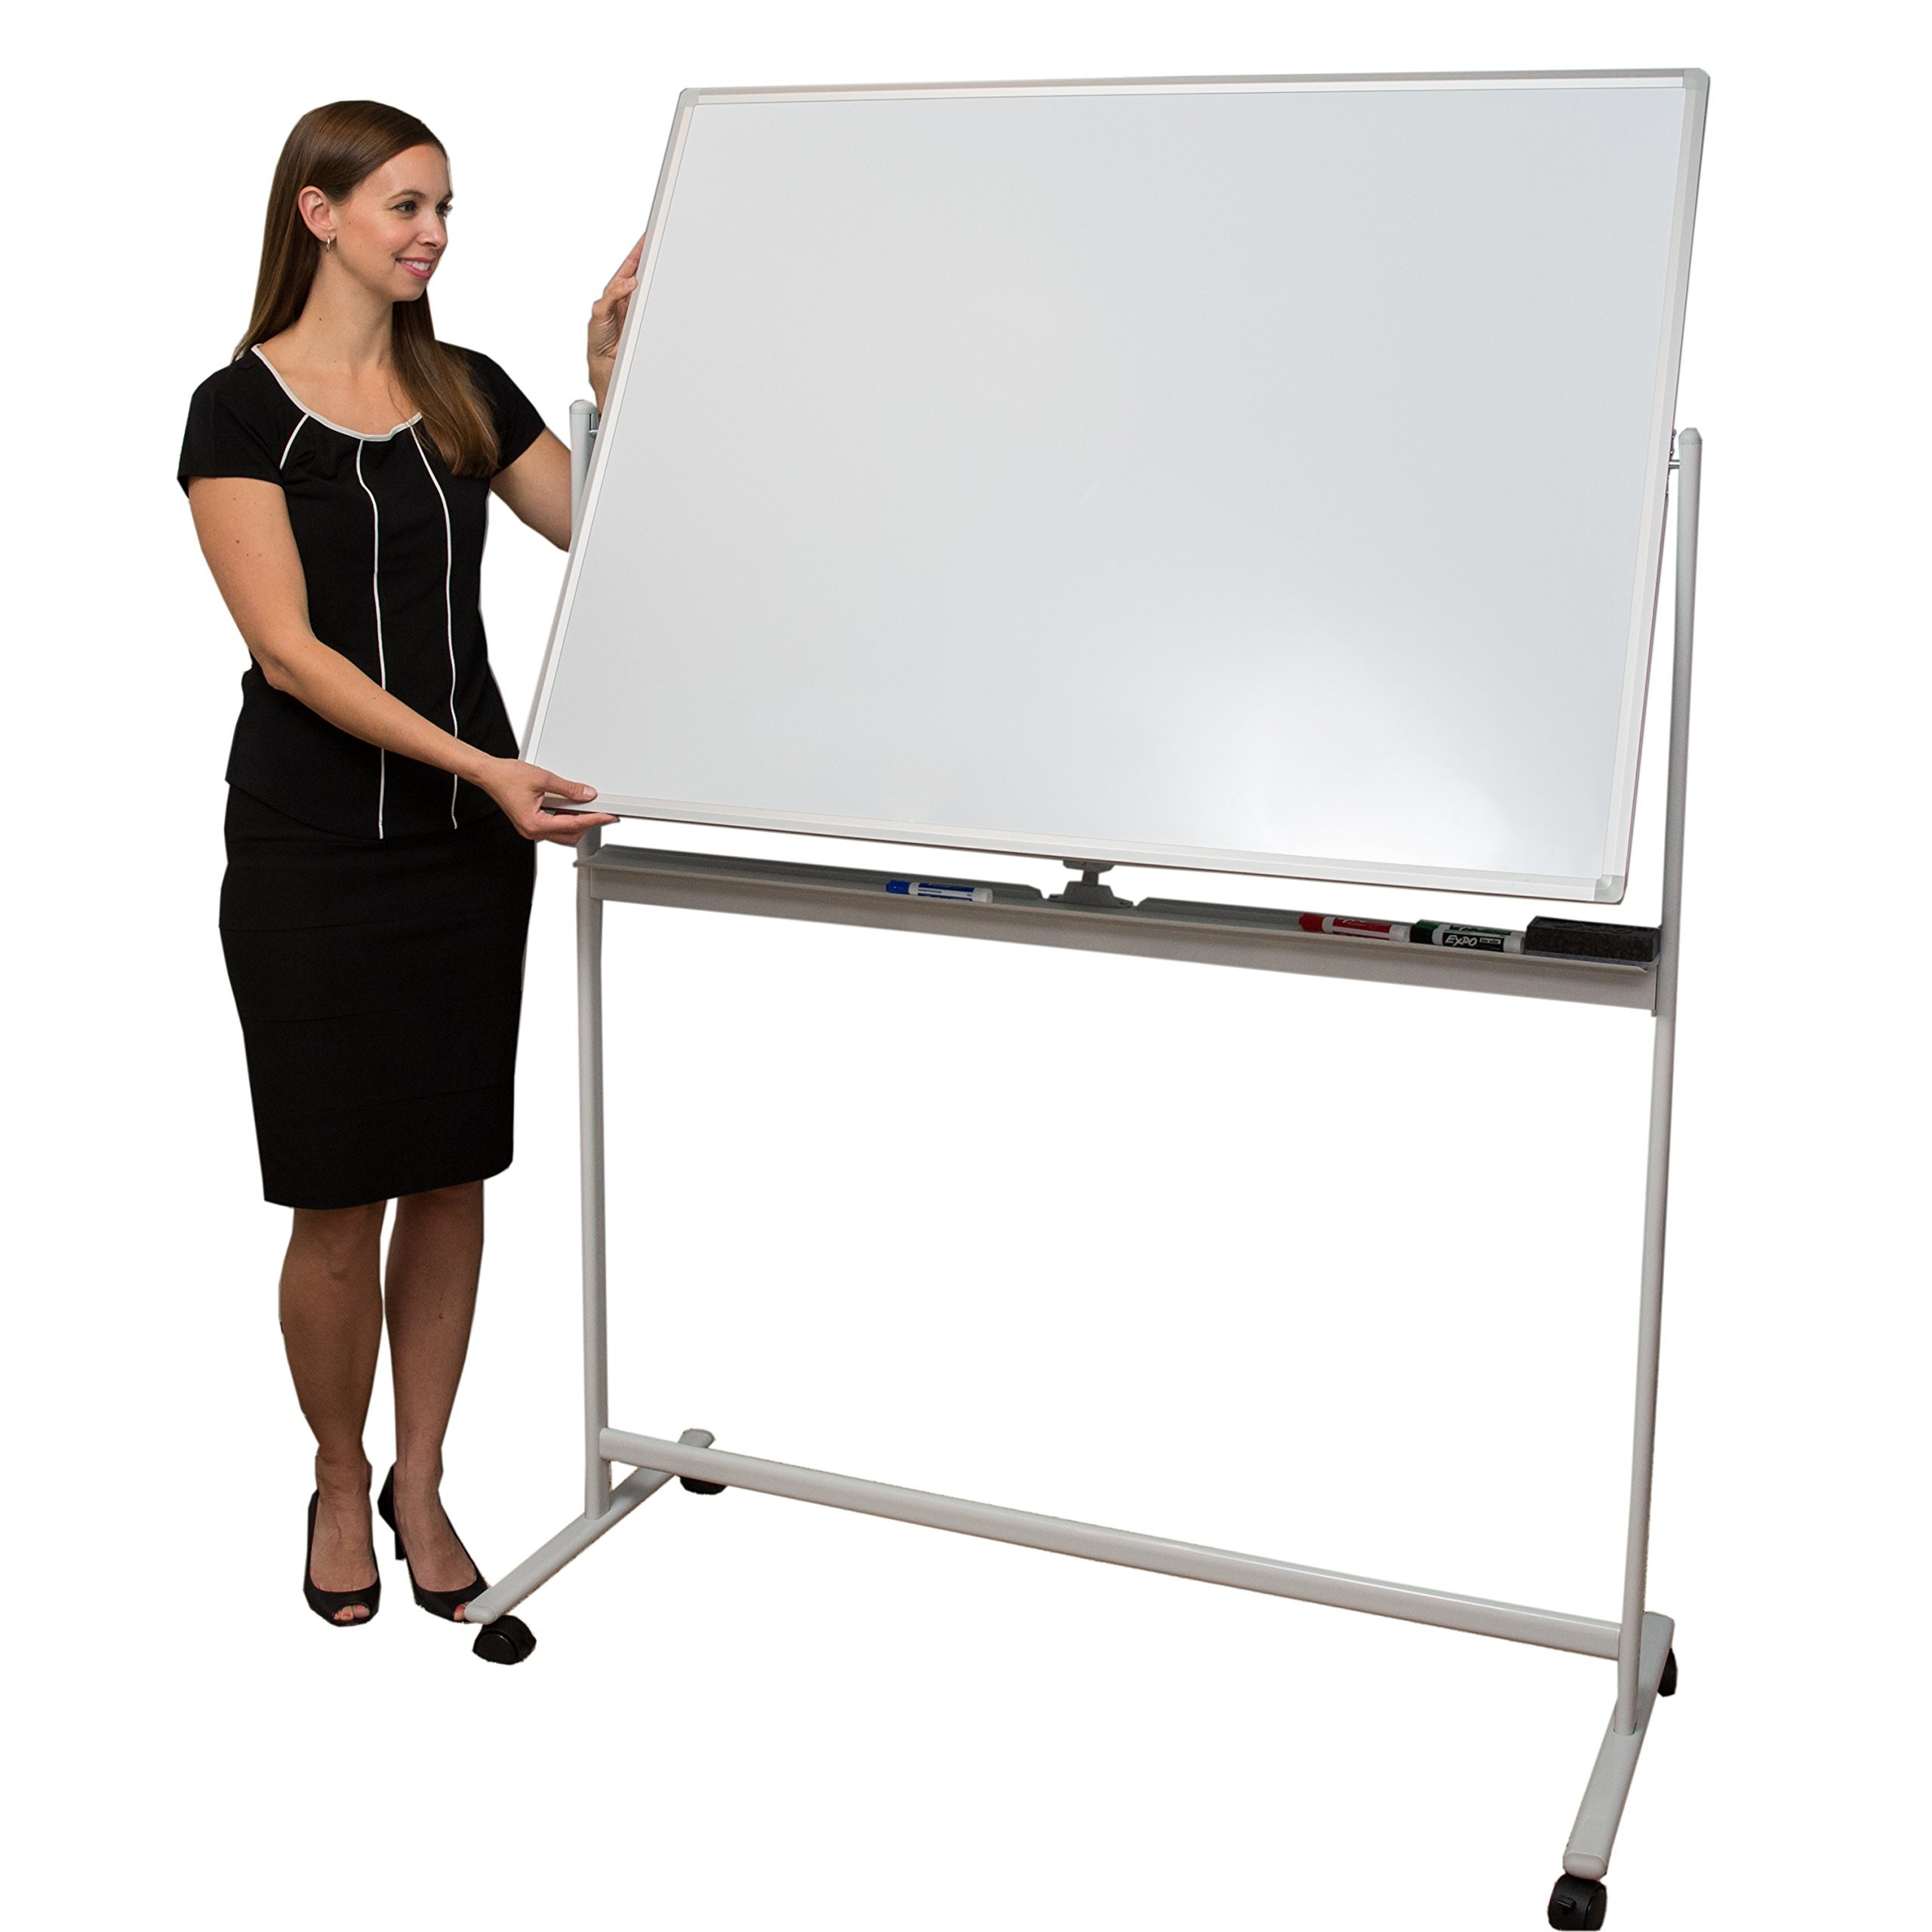 Induxpert Giant Mobile Dry Erase Magnetic Whiteboard - Double-Sided - Flip Sides Quickly With Lock/Unlock Feature - Sturdy Frame - Easy to Clean and Assemble - 47 X 36 by INDUXPERT